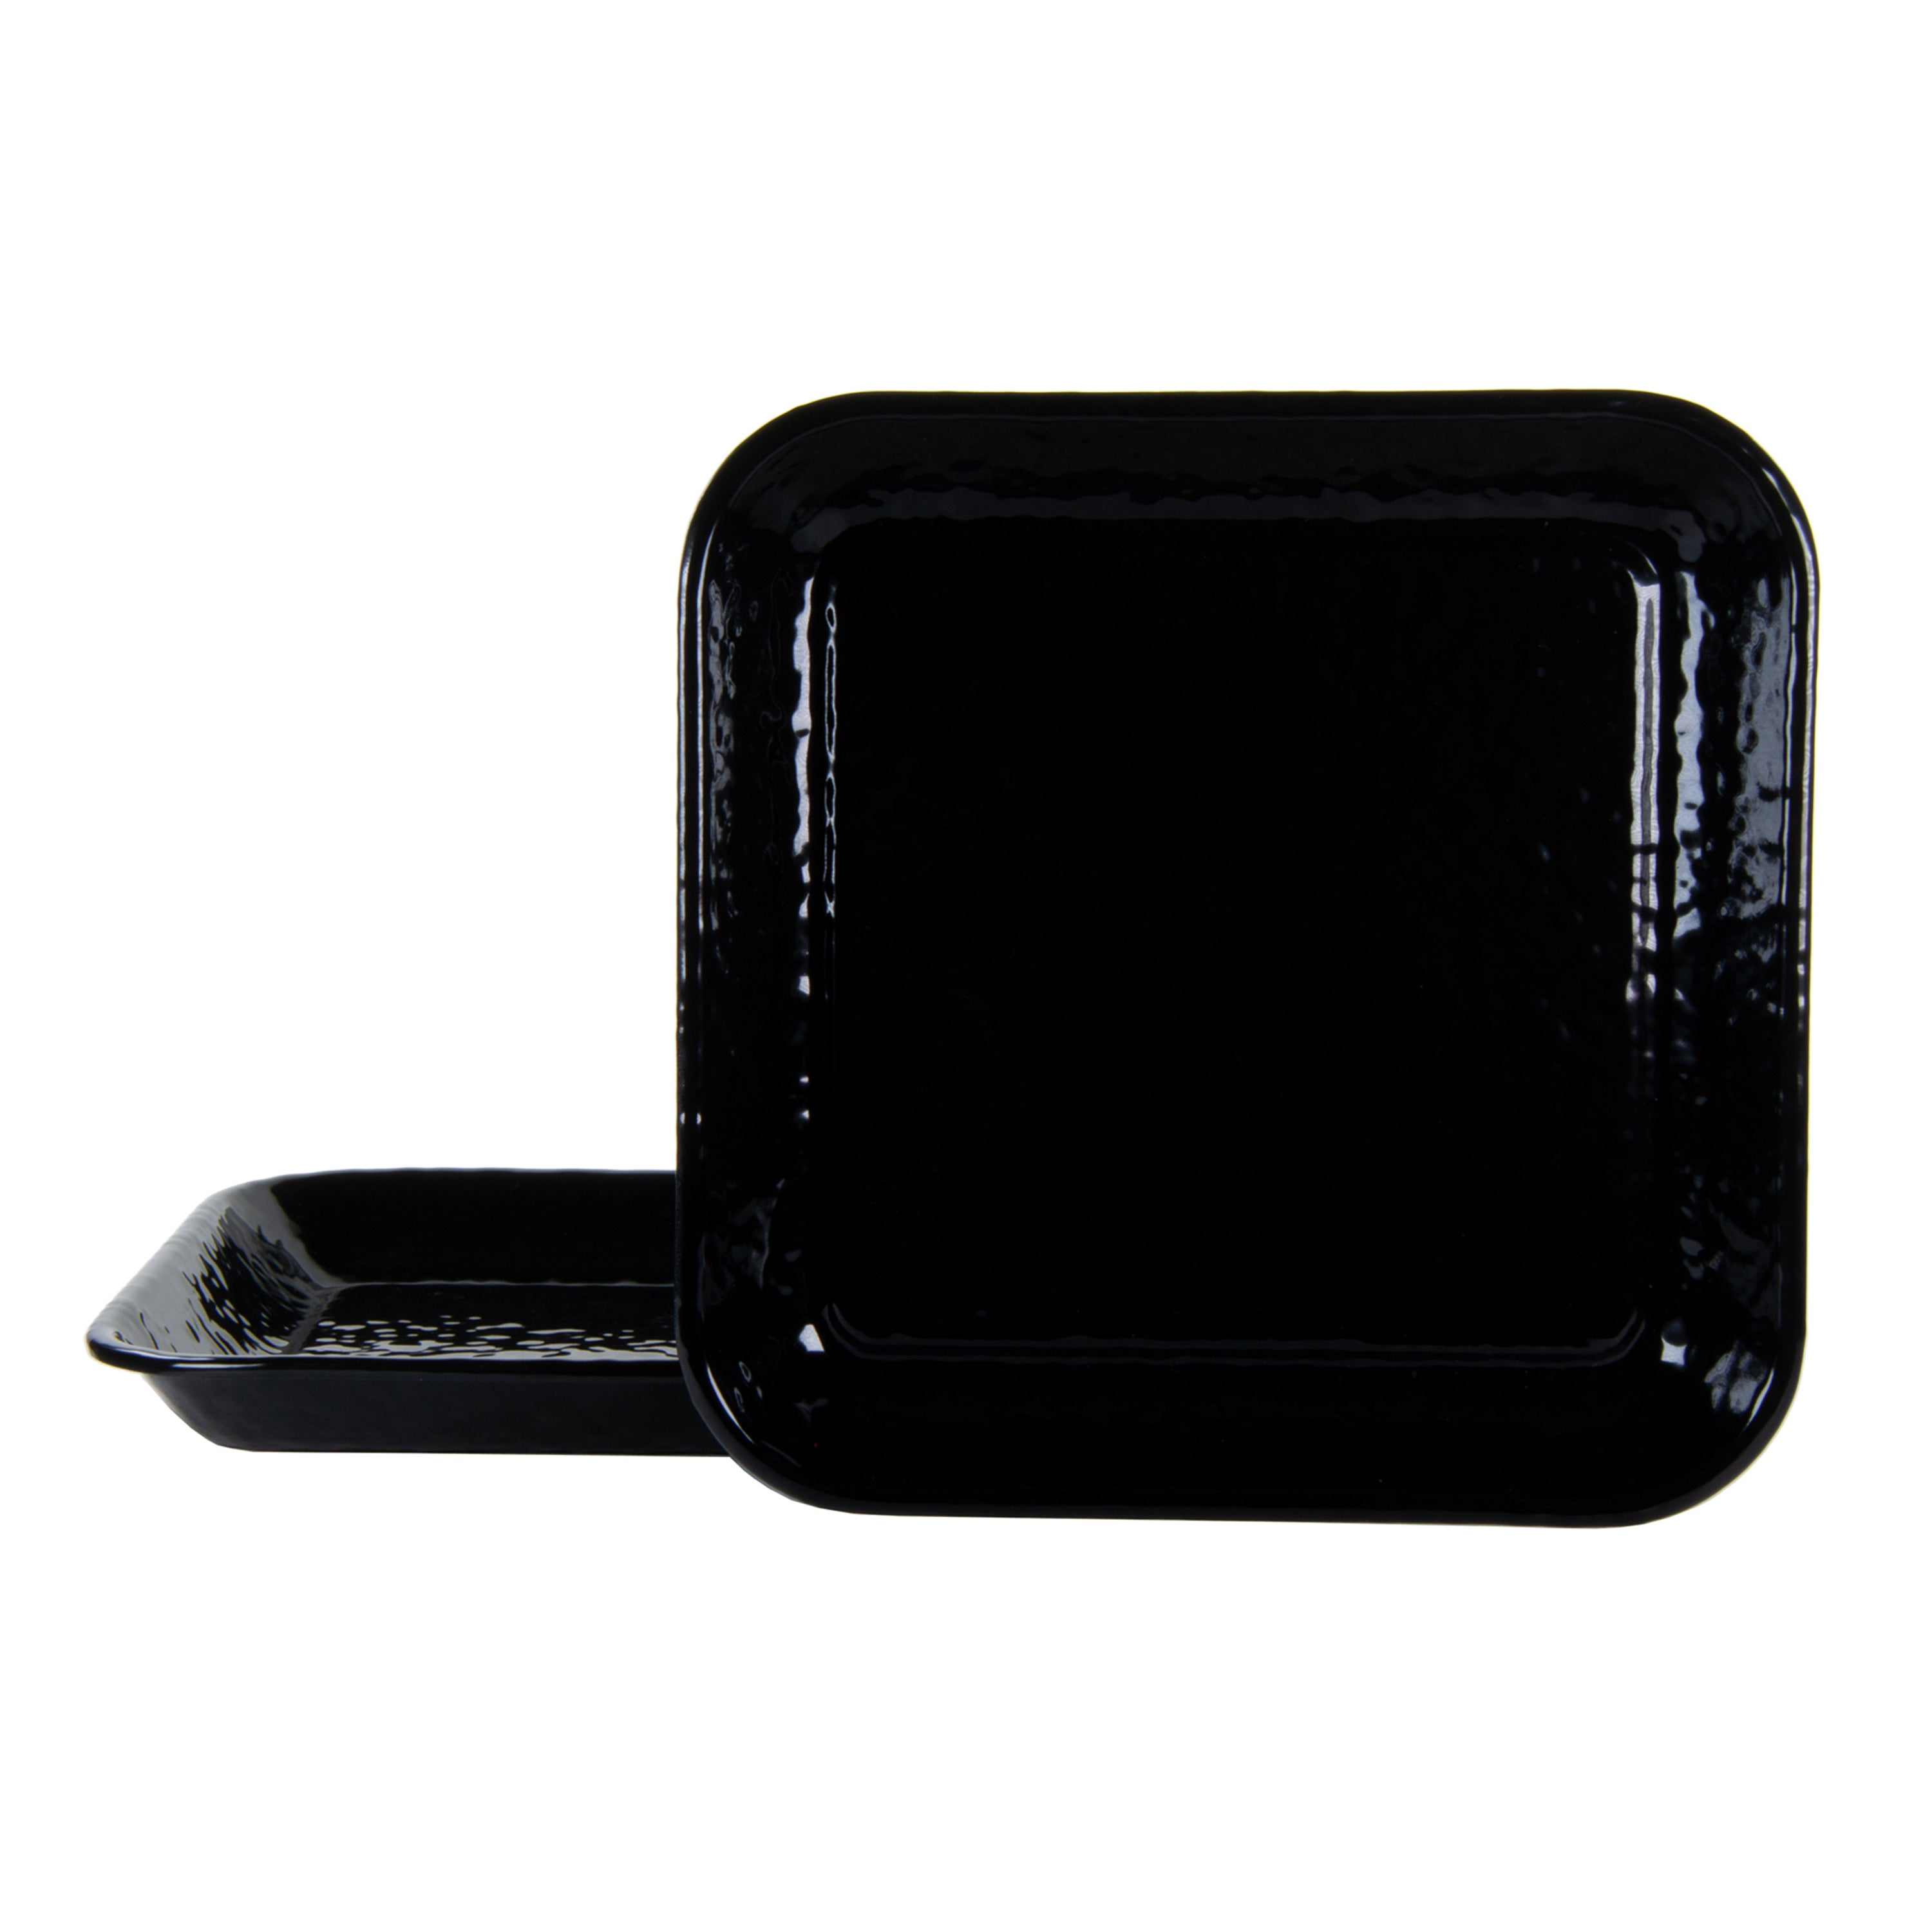 BK09S2 - Set of 2 Solid Black Square Trays Product 1